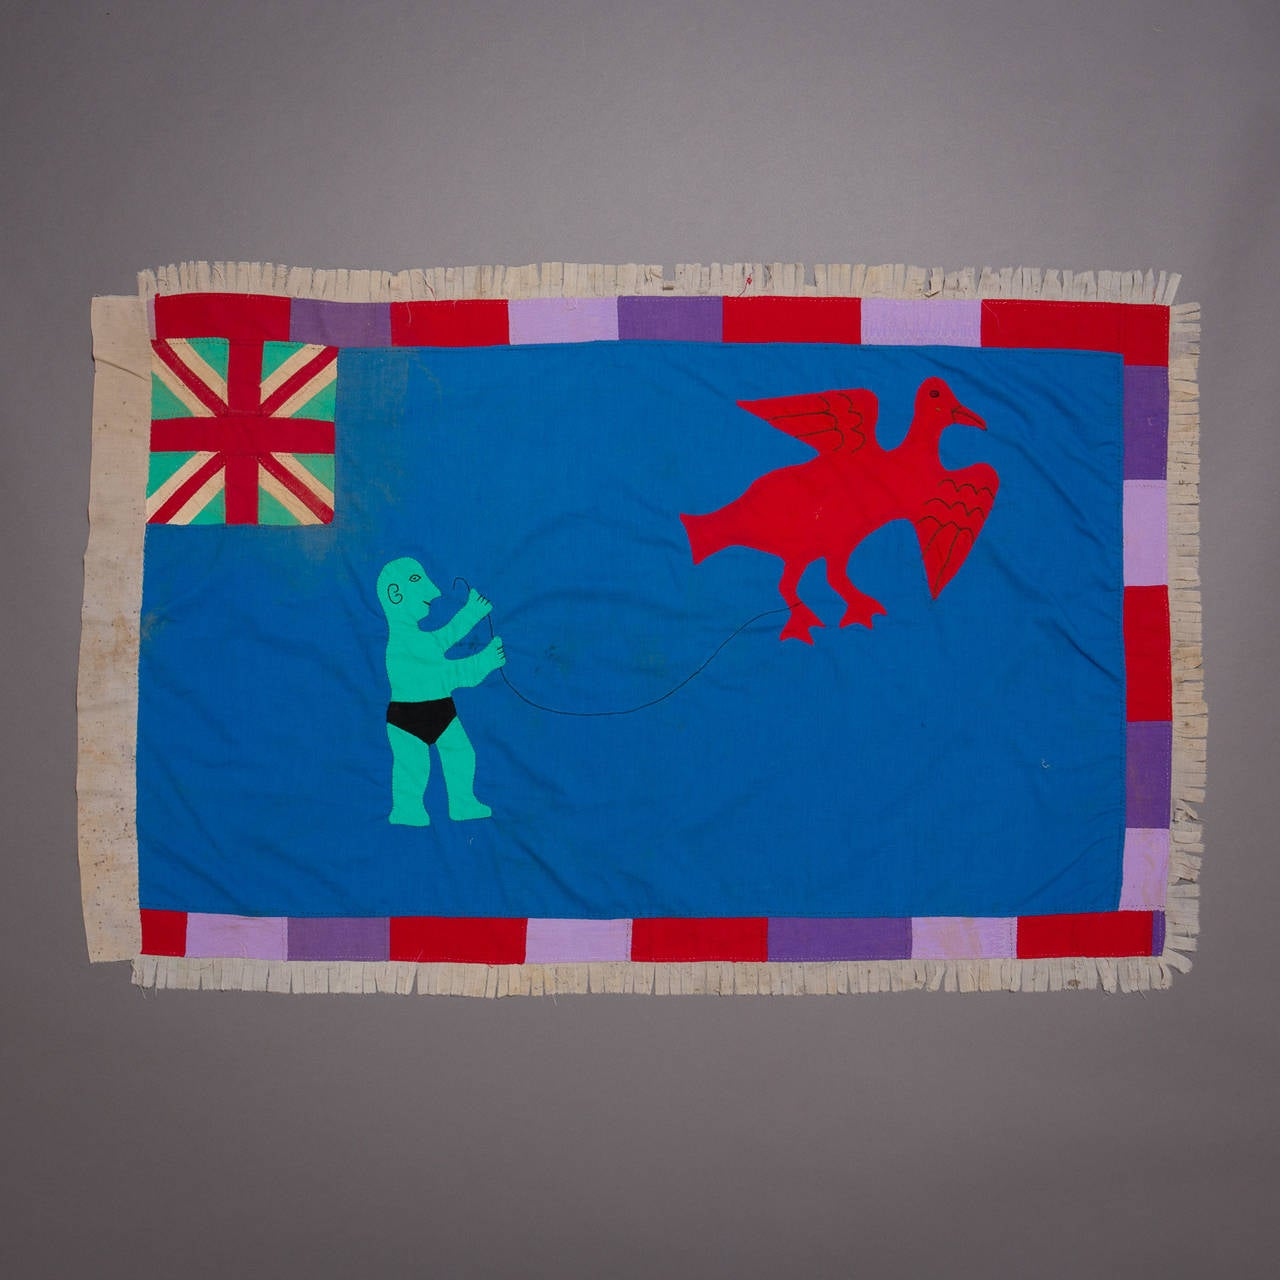 A large and graphically stunning Asafo flag.  Fante flags represent the merger of two cultural traditions, the Akan tradition of combining proverbs with visual imagery and the European heraldic tradition, which used flags and banners displaying